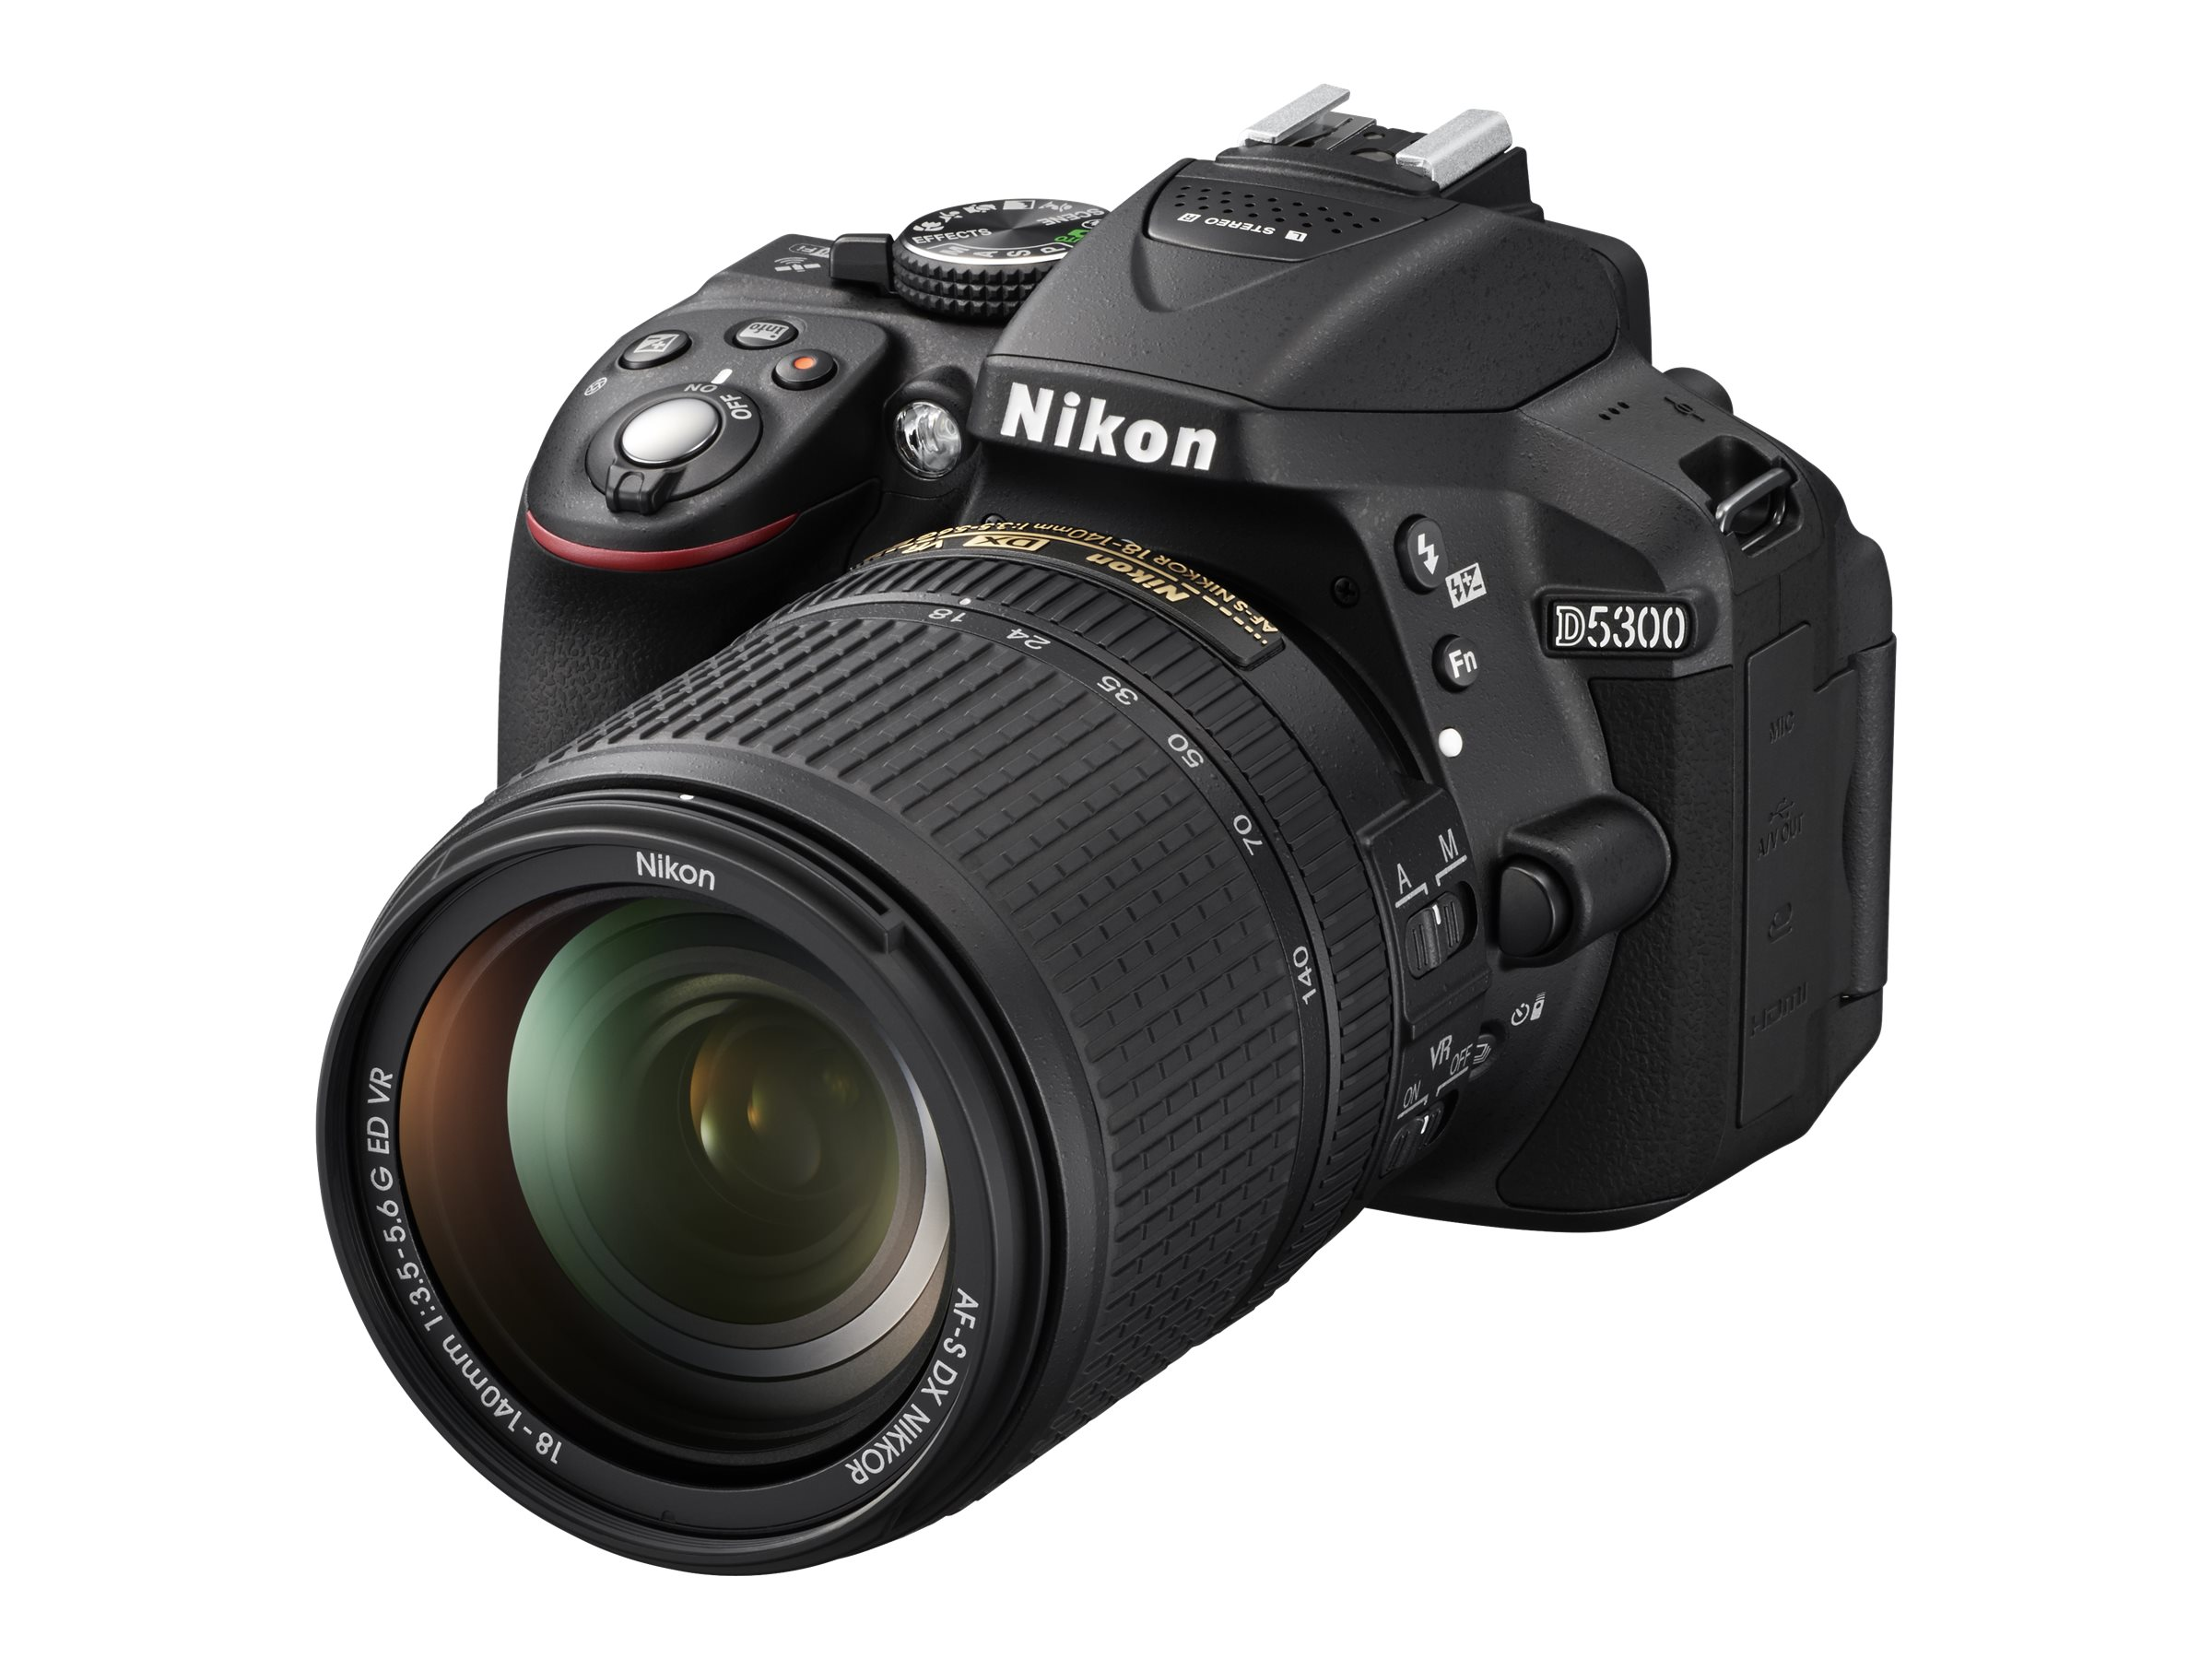 Nikon D5300 DX-Format Digital SLR Body only - Black